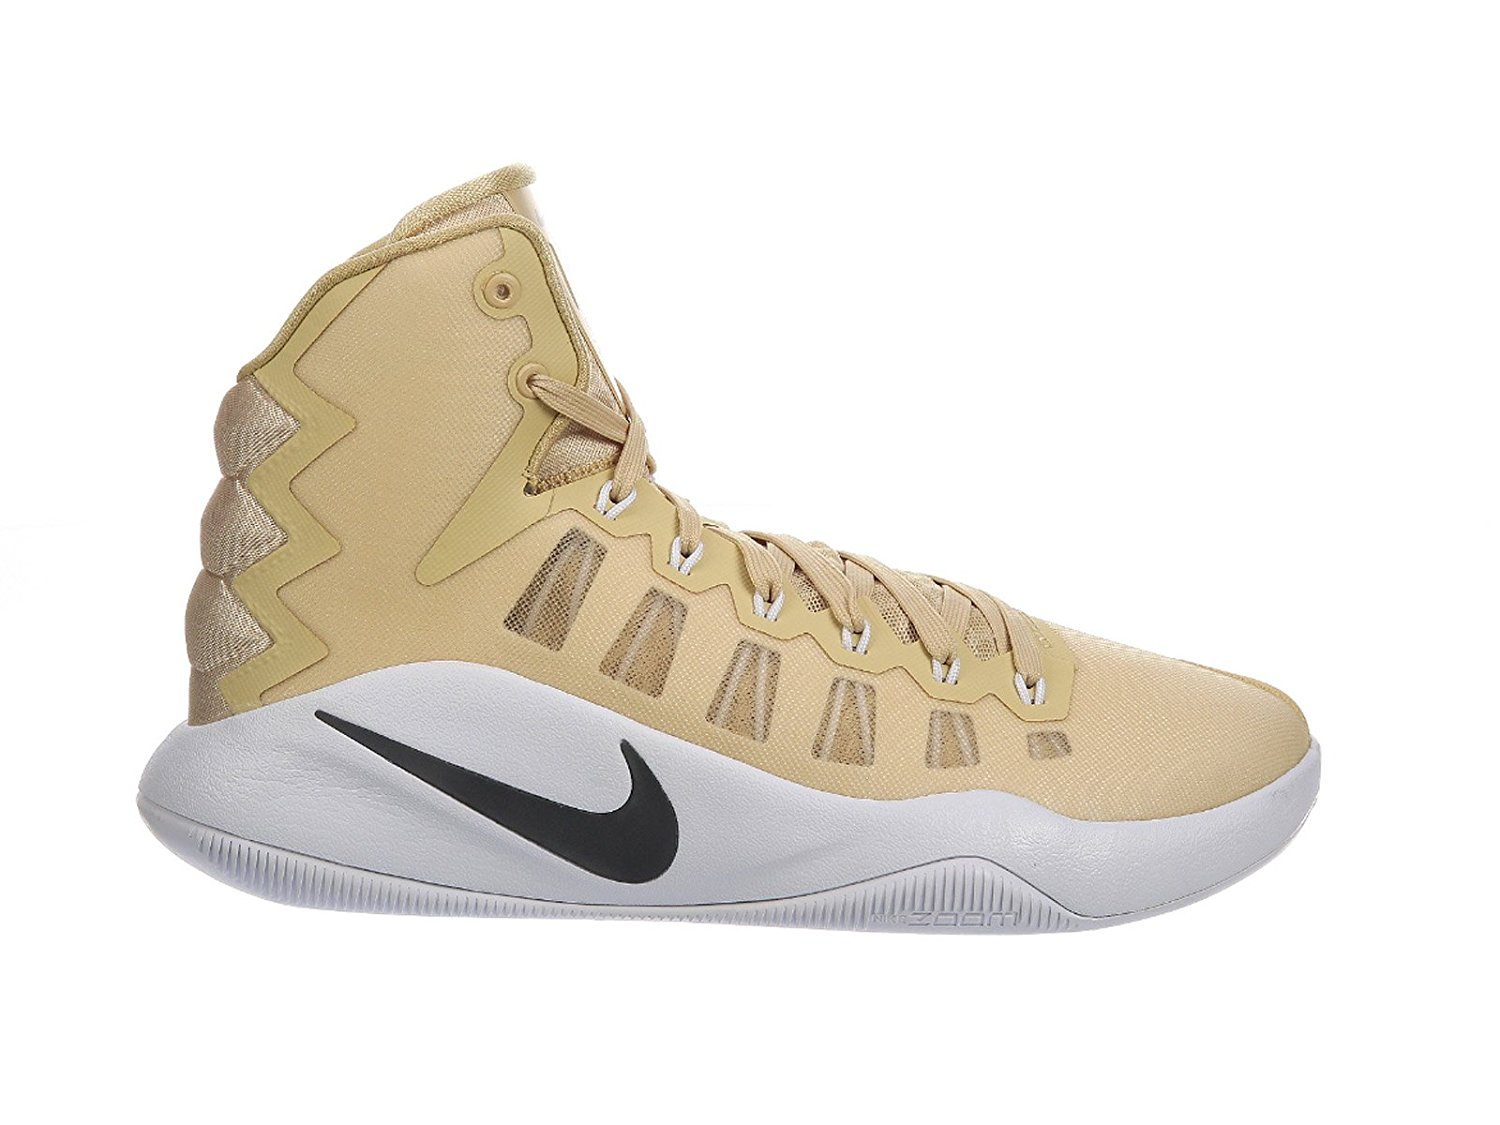 e051558187c Get Quotations · Nike Men s Hyperdunk 2016 Synthetic Basketball Shoes